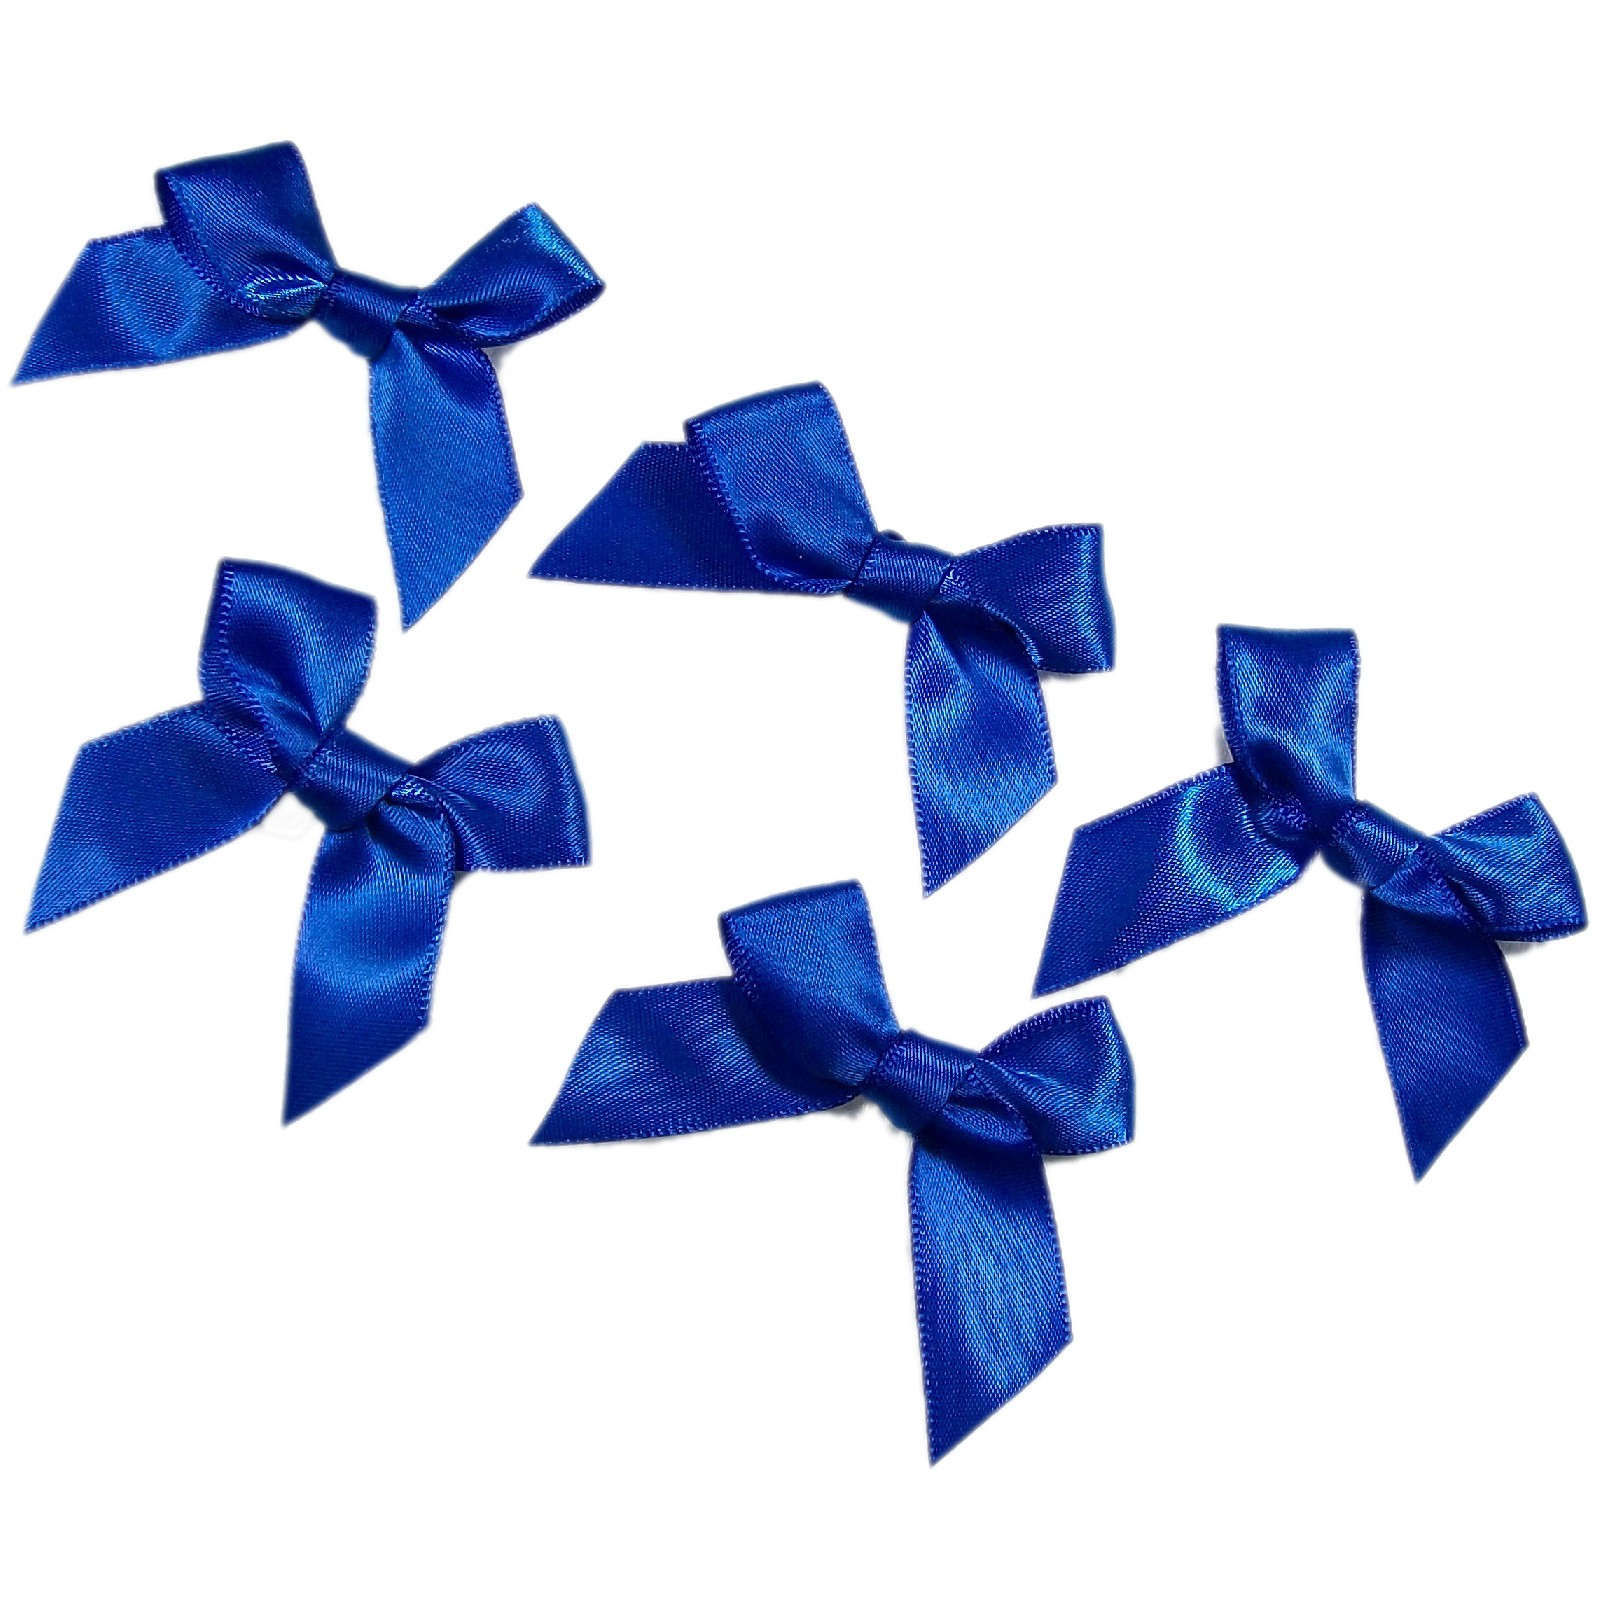 Satin Ribbon Bows approx 5.5cm wide Royal Blue Pack of 5